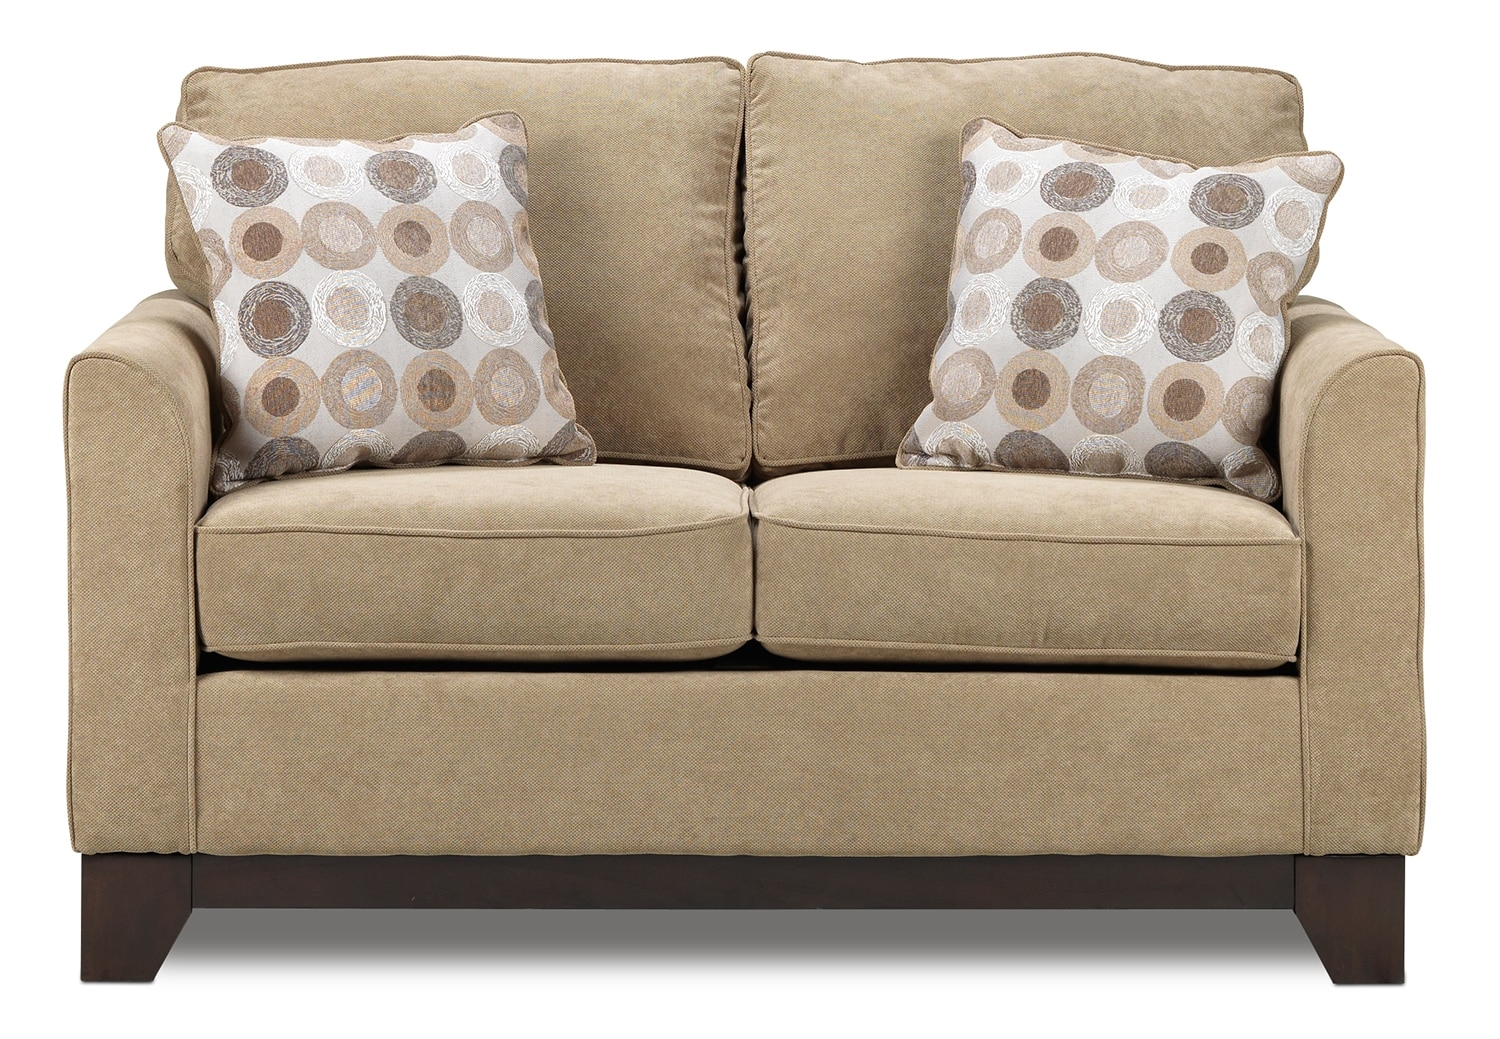 Living Room Furniture - Sand Castle Loveseat - Light Brown